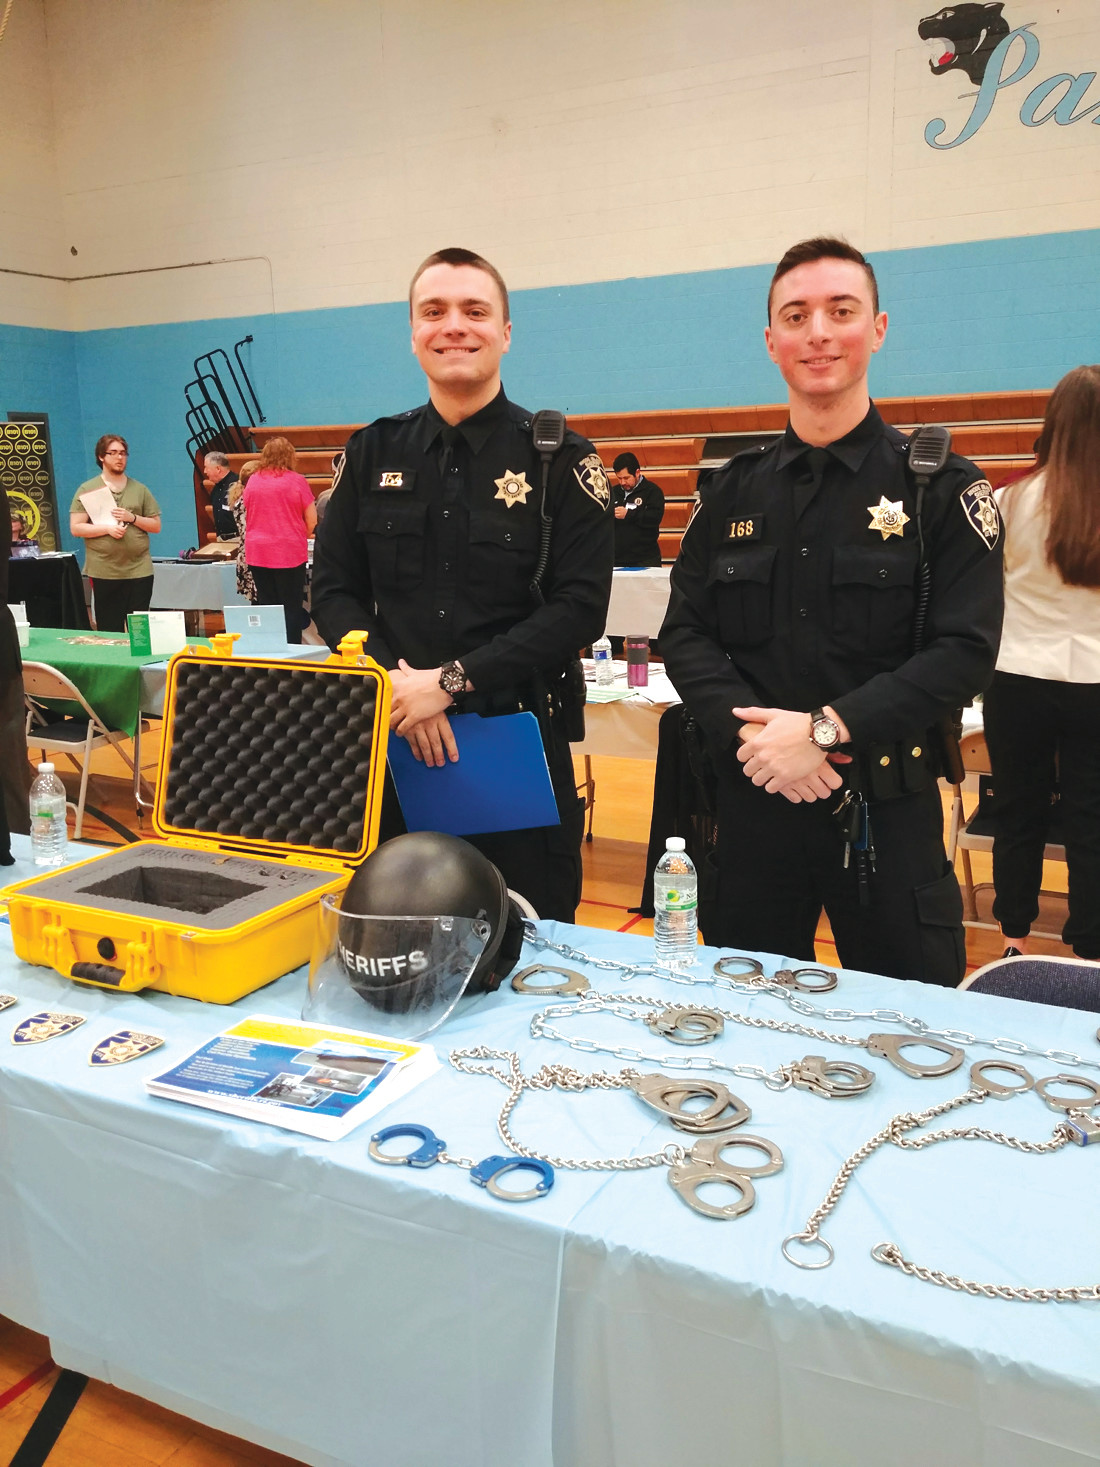 IT MUST BE HANDCUFFS: Many adults and students alike were drawn to the table set up by RI Family Court Sheriffs Ryan Anderson and Gian Bianchi, which had a large display of various types of handcuffs and other equipment needed in their profession.